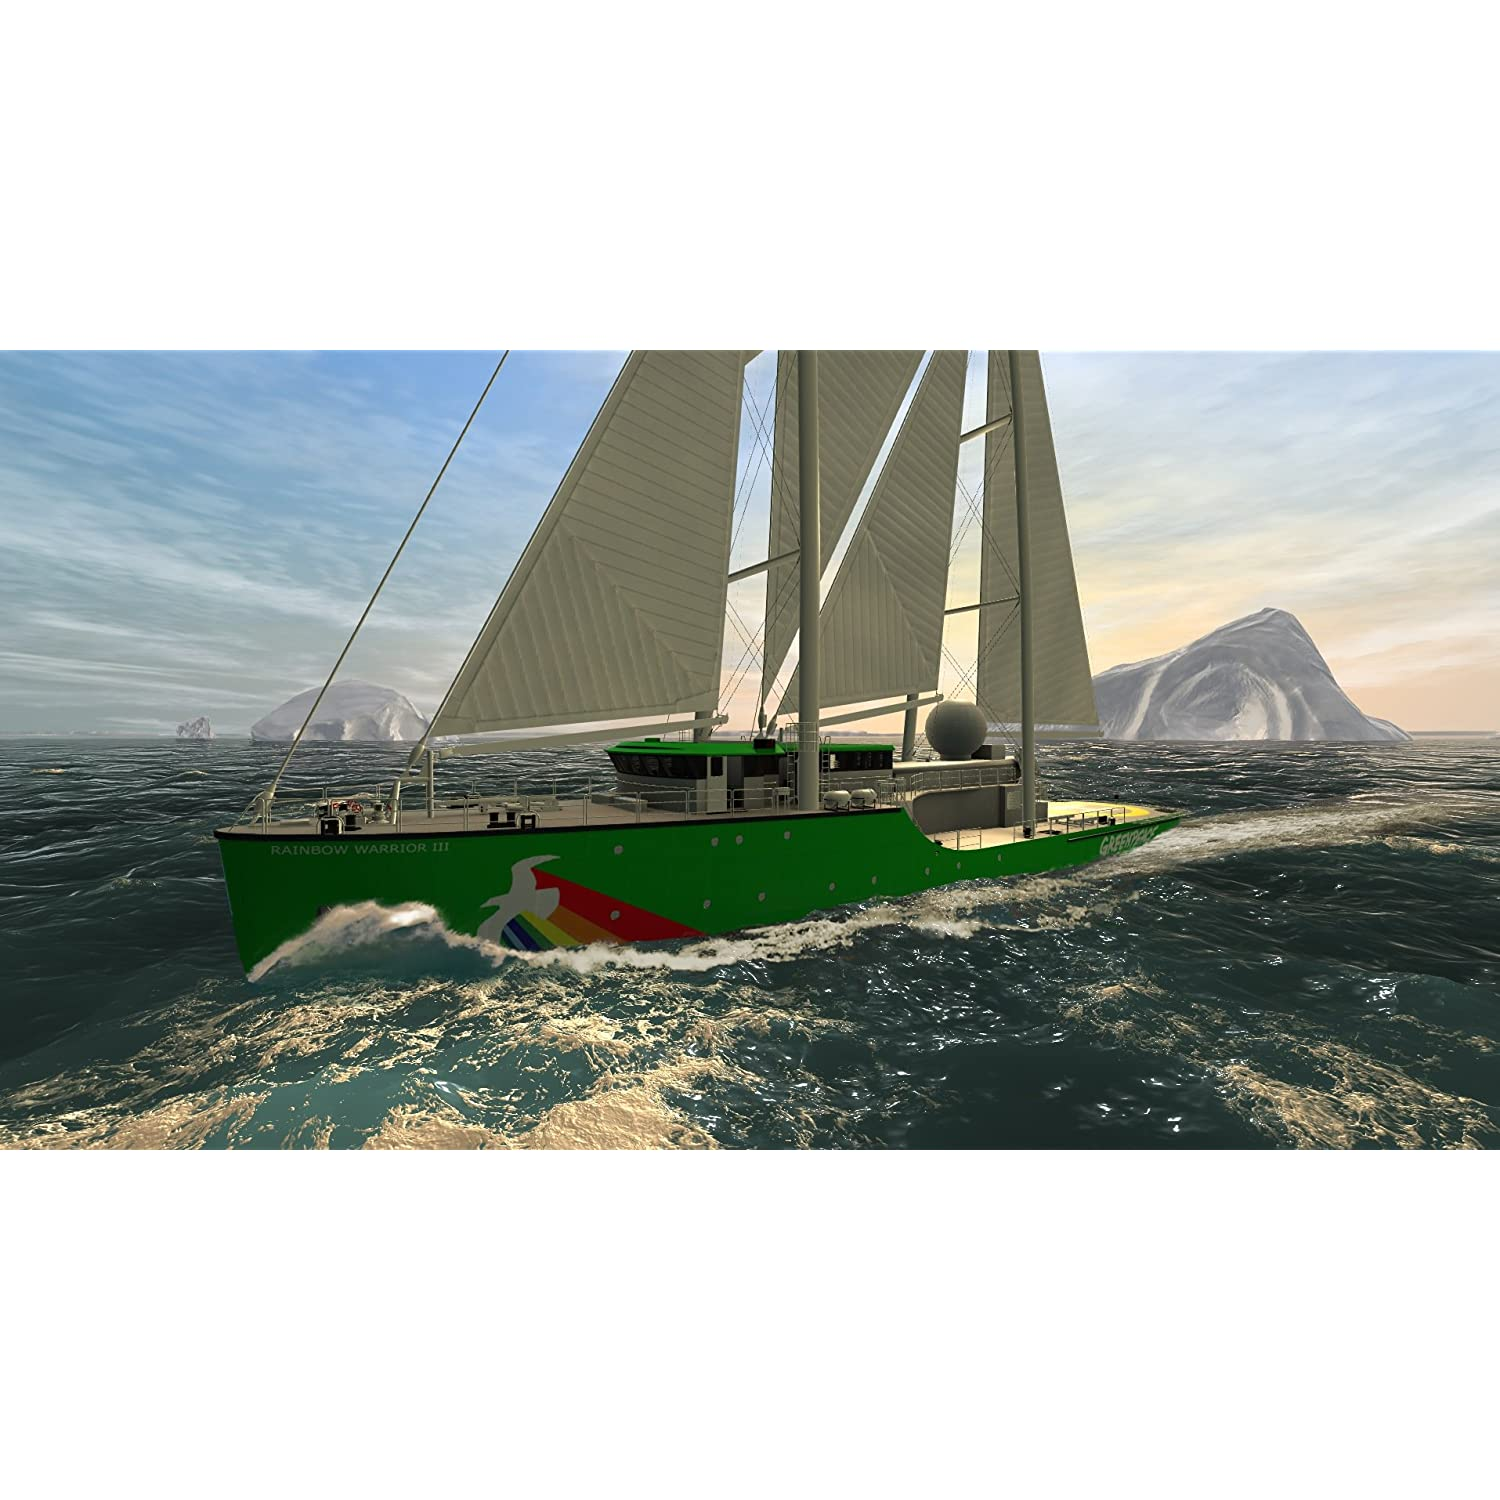 Online Game, Online Games, Video Game, Video Games, Ship Simulator, Free Demo, Download, PC, Simulation, Ship Simulator Extremes - Free Demo [Download]